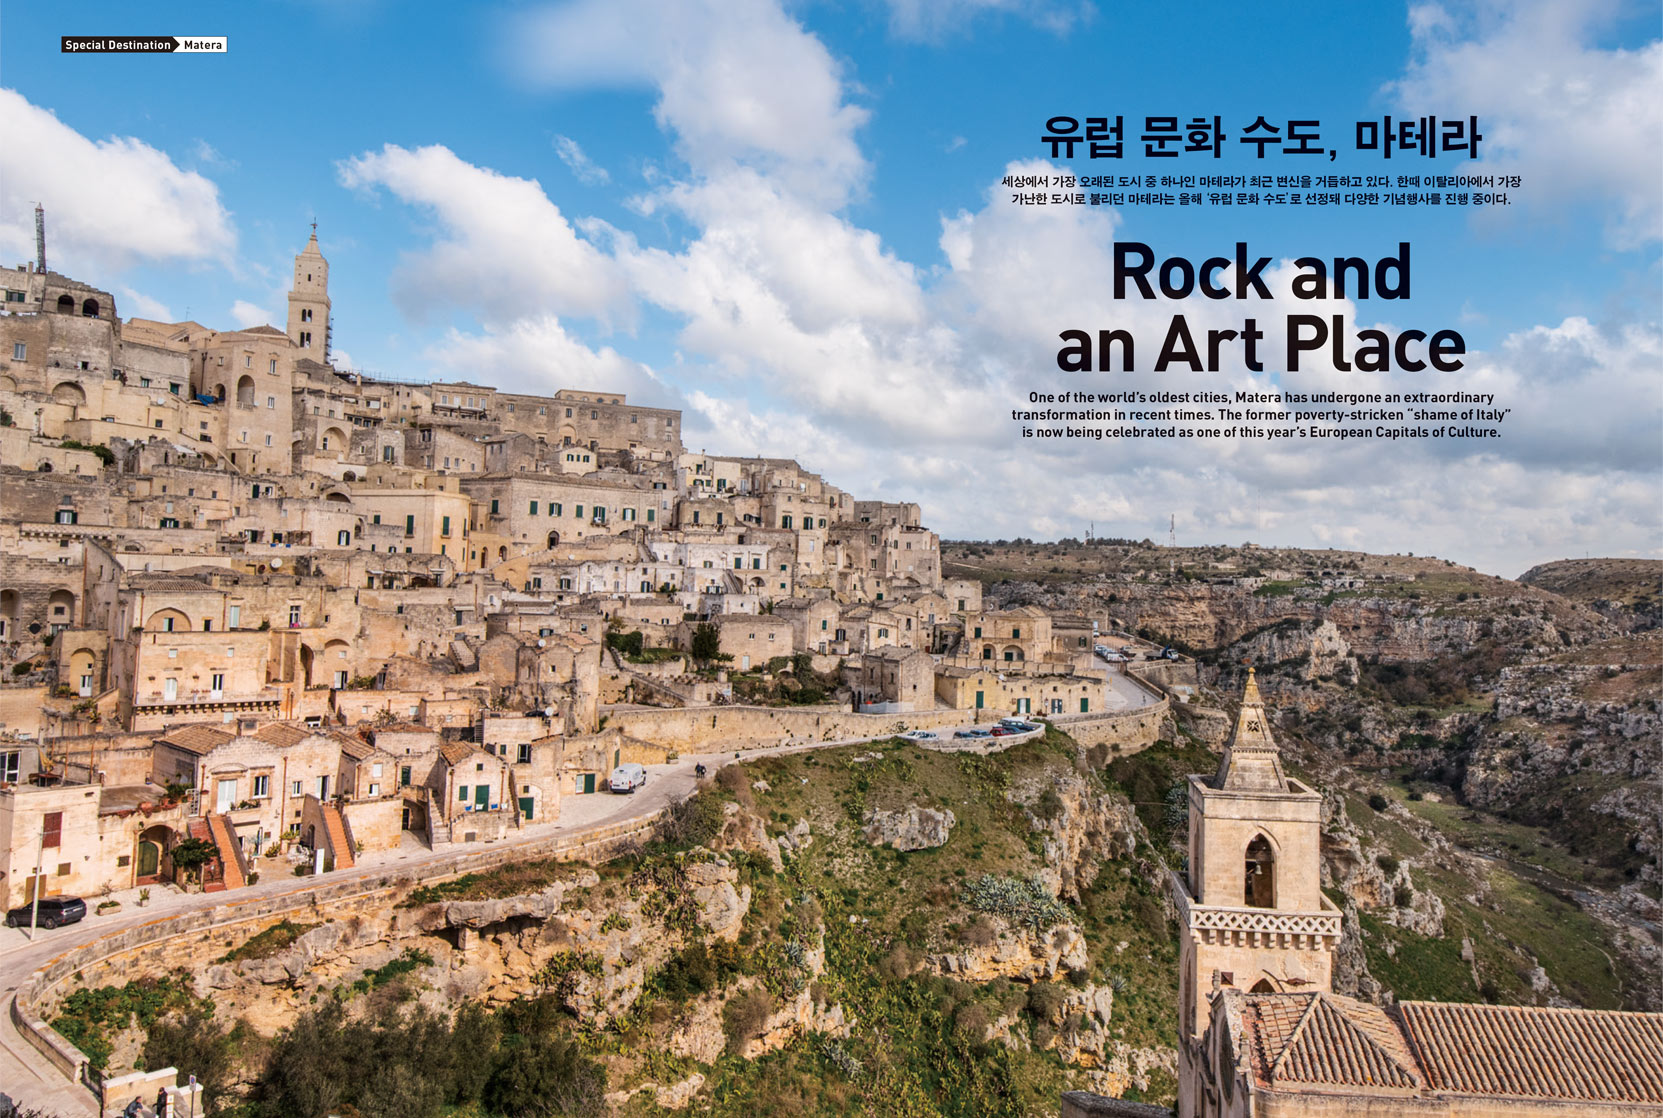 Italy | Morning Calm Magazine, Korean Air | Simon Urwin | Published Articles & Photography